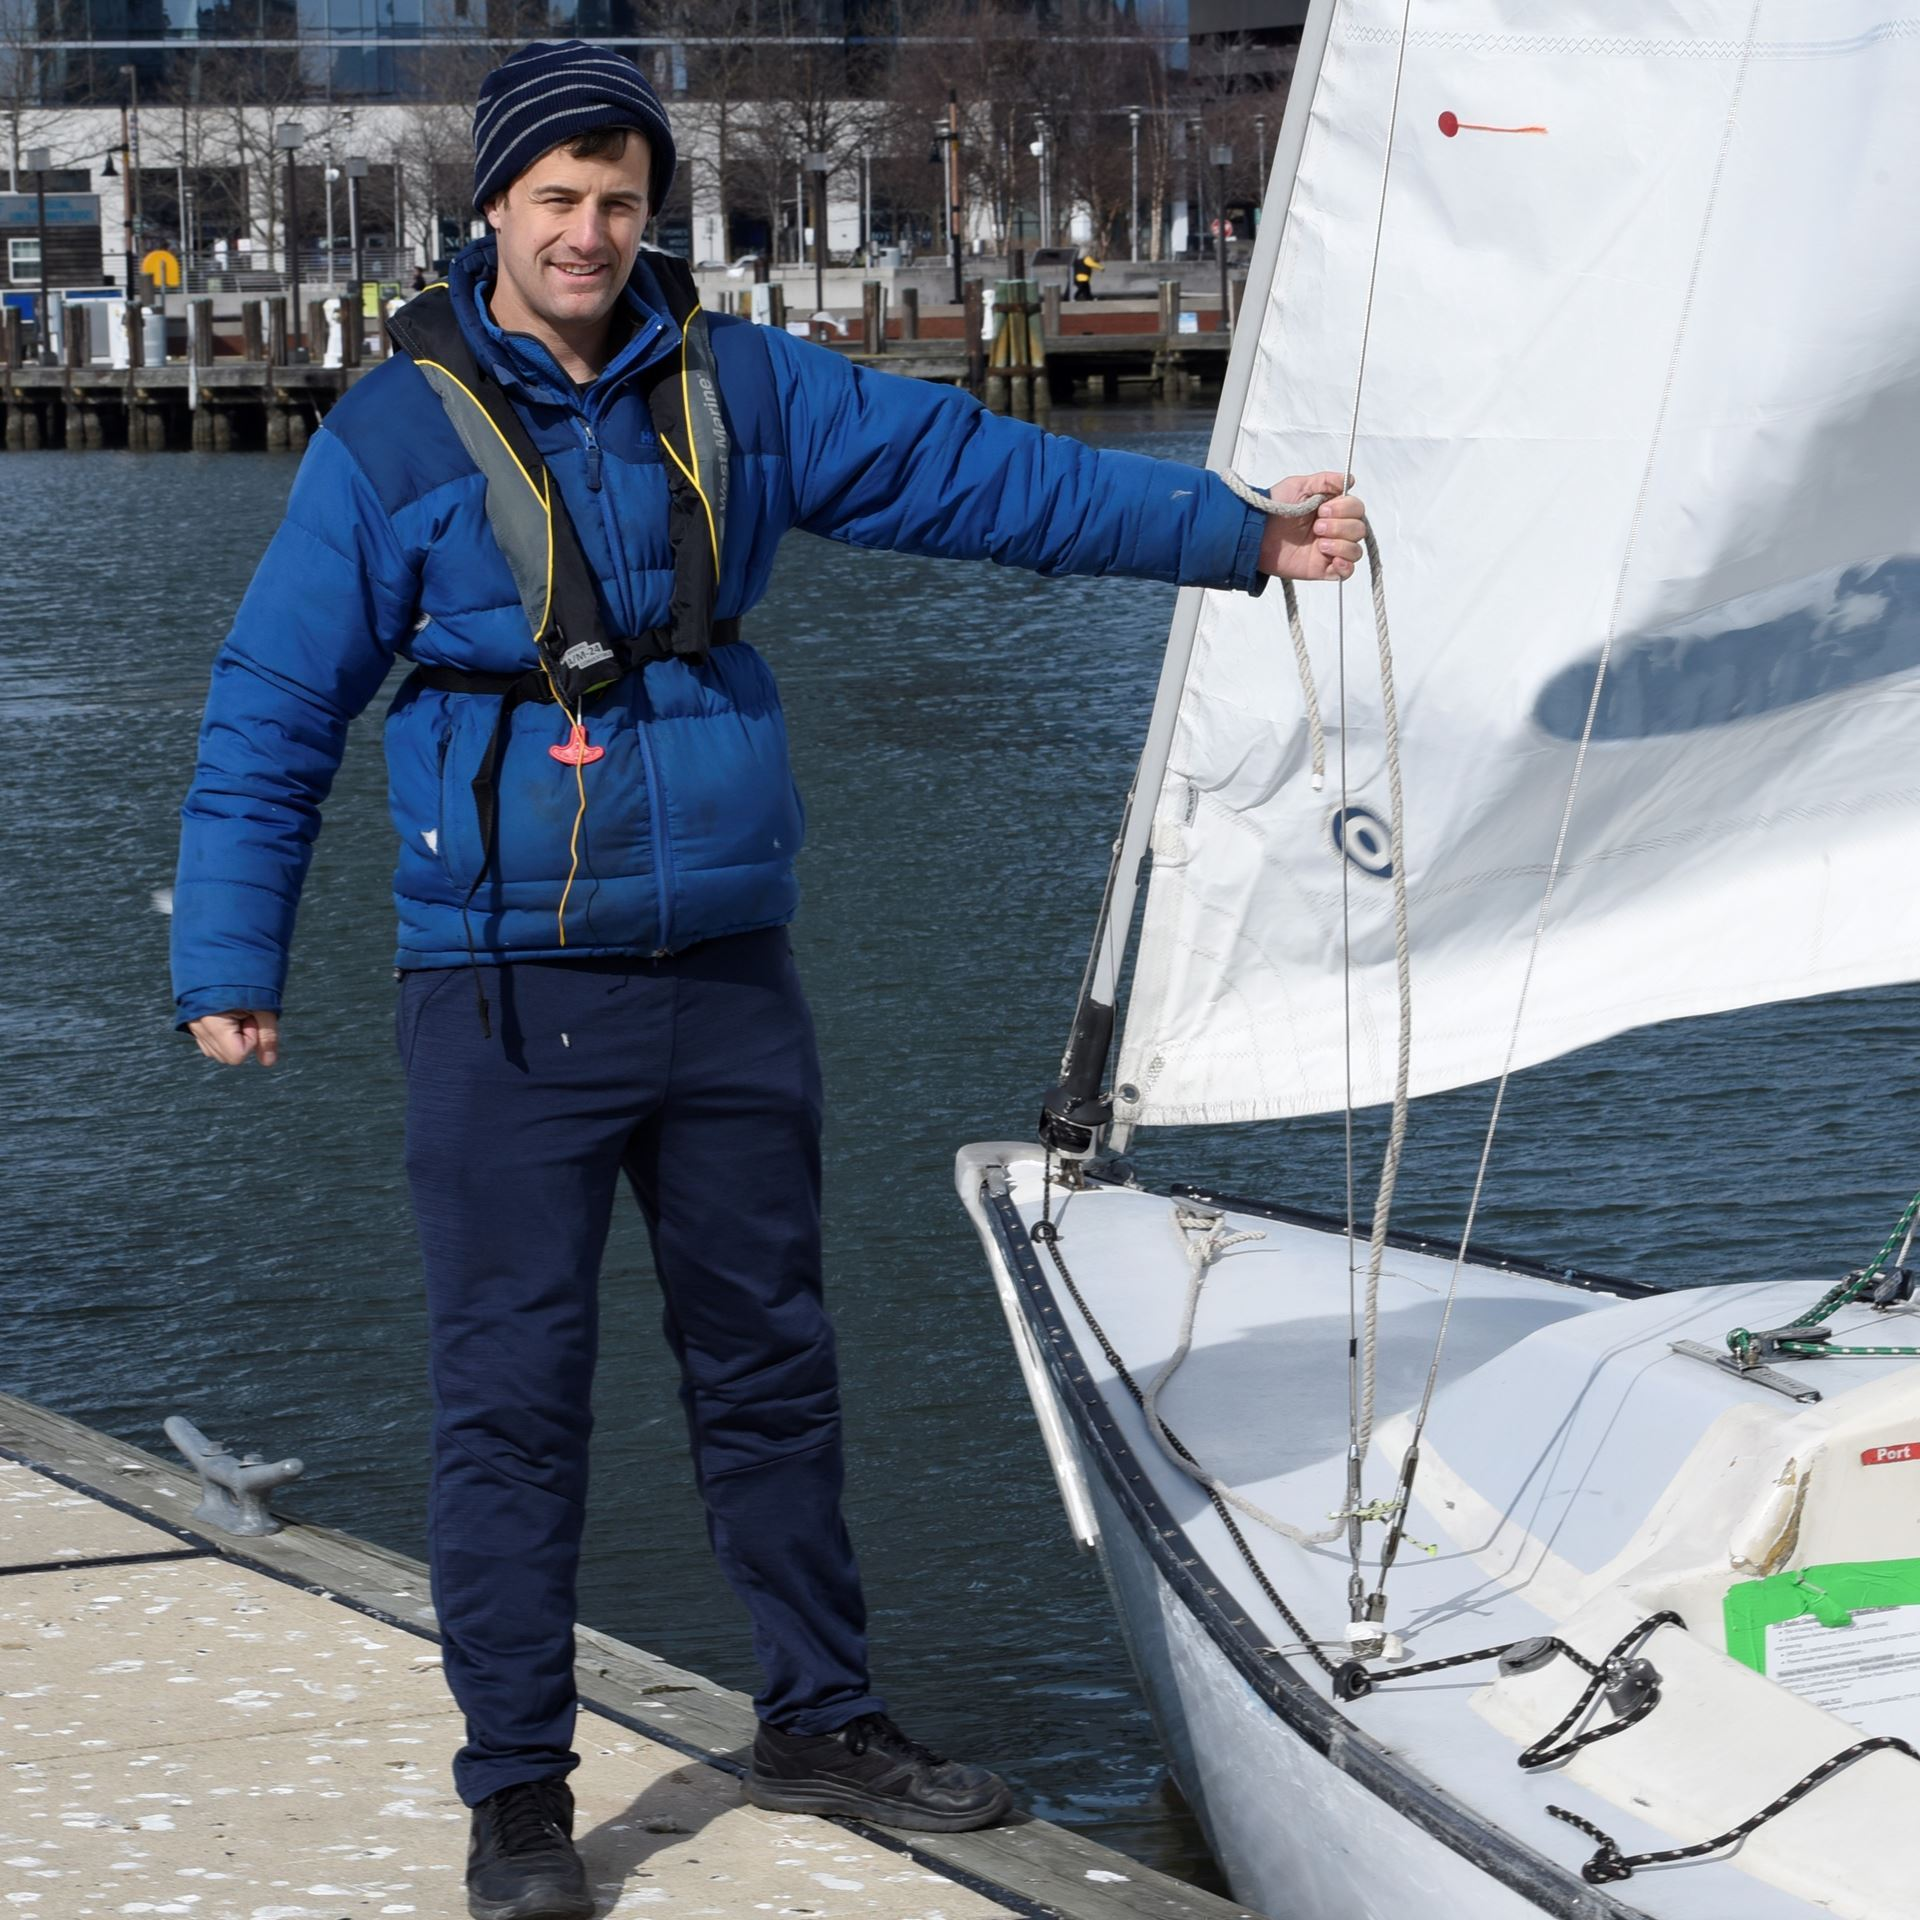 Instructor Graham preps to sail